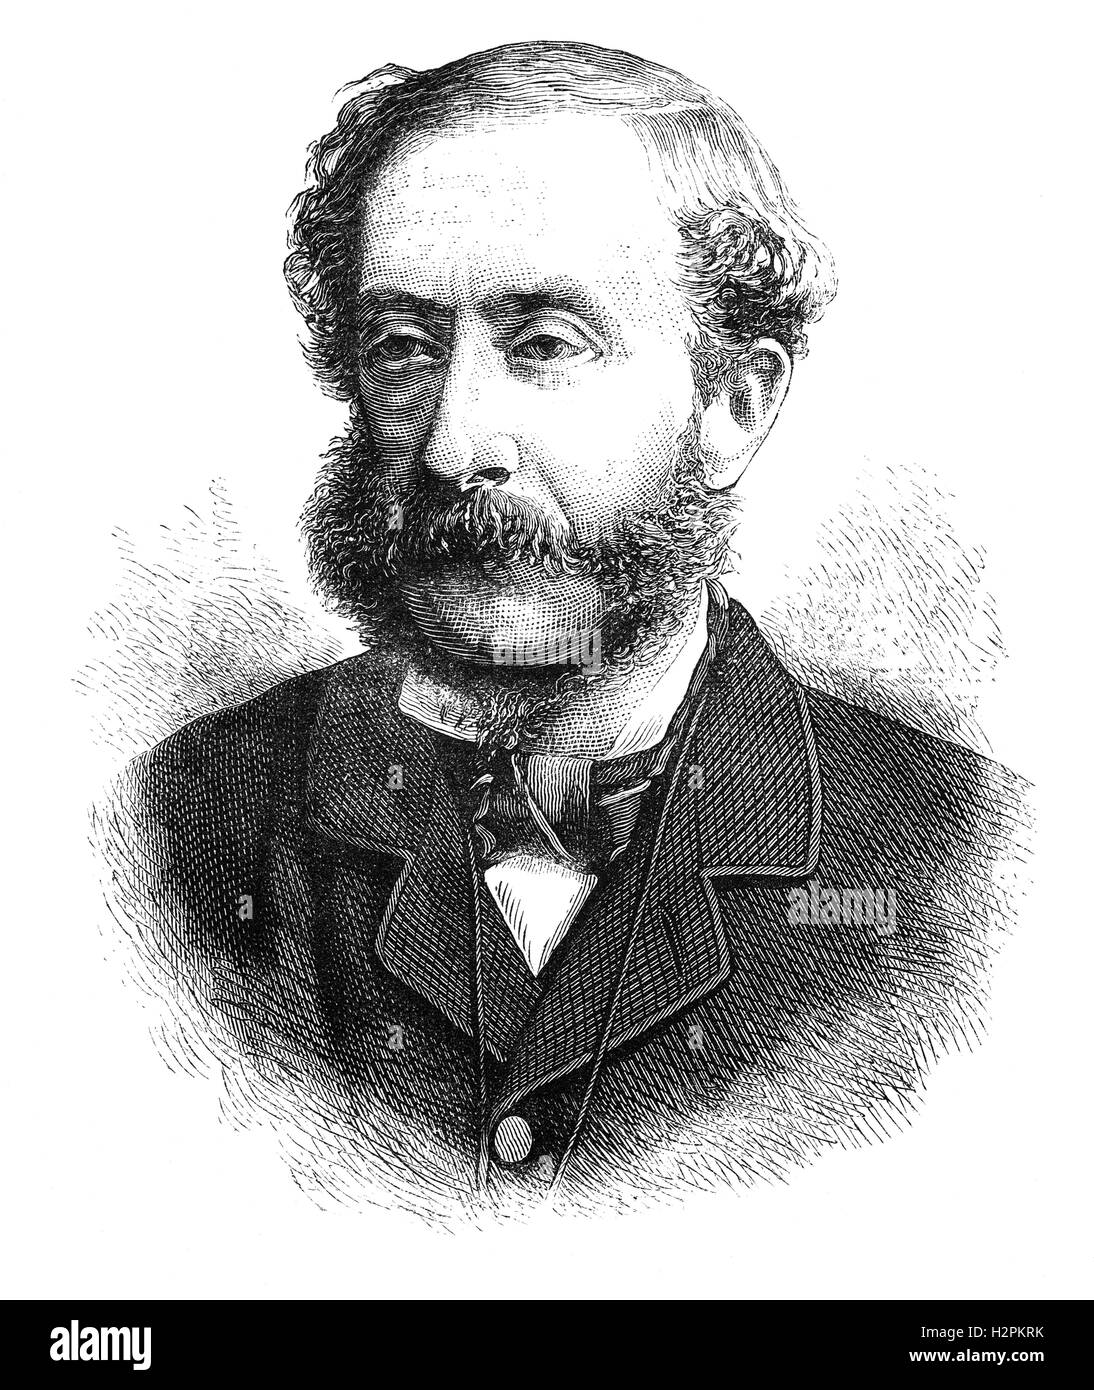 Henry Howard Molyneux Herbert, 4th Earl of Carnarvon (1831 – 1890), was a British politician and a leading member - Stock Image